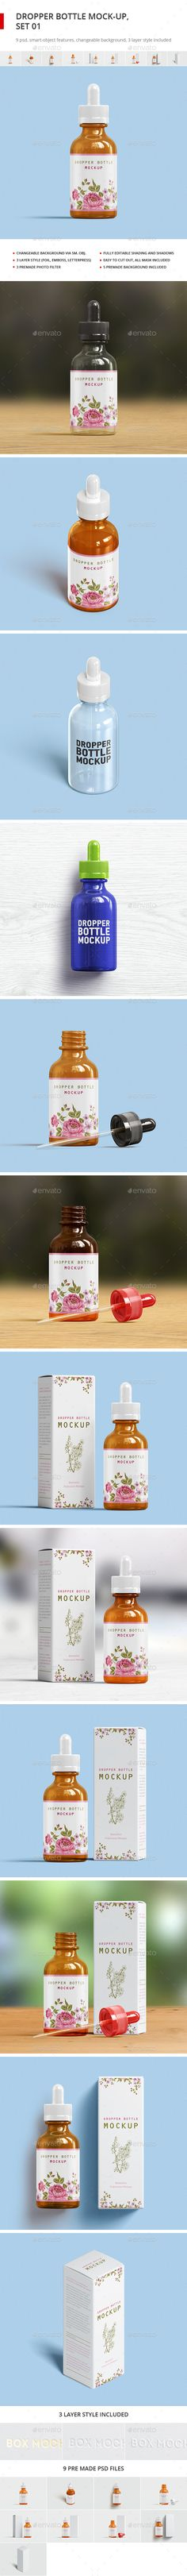 Dropper Bottle Mockup and Package Box Mockup — Photoshop PSD #showcase #dropper • Available here → https://graphicriver.net/item/dropper-bottle-mockup-and-package-box-mockup/17922328?ref=pxcr